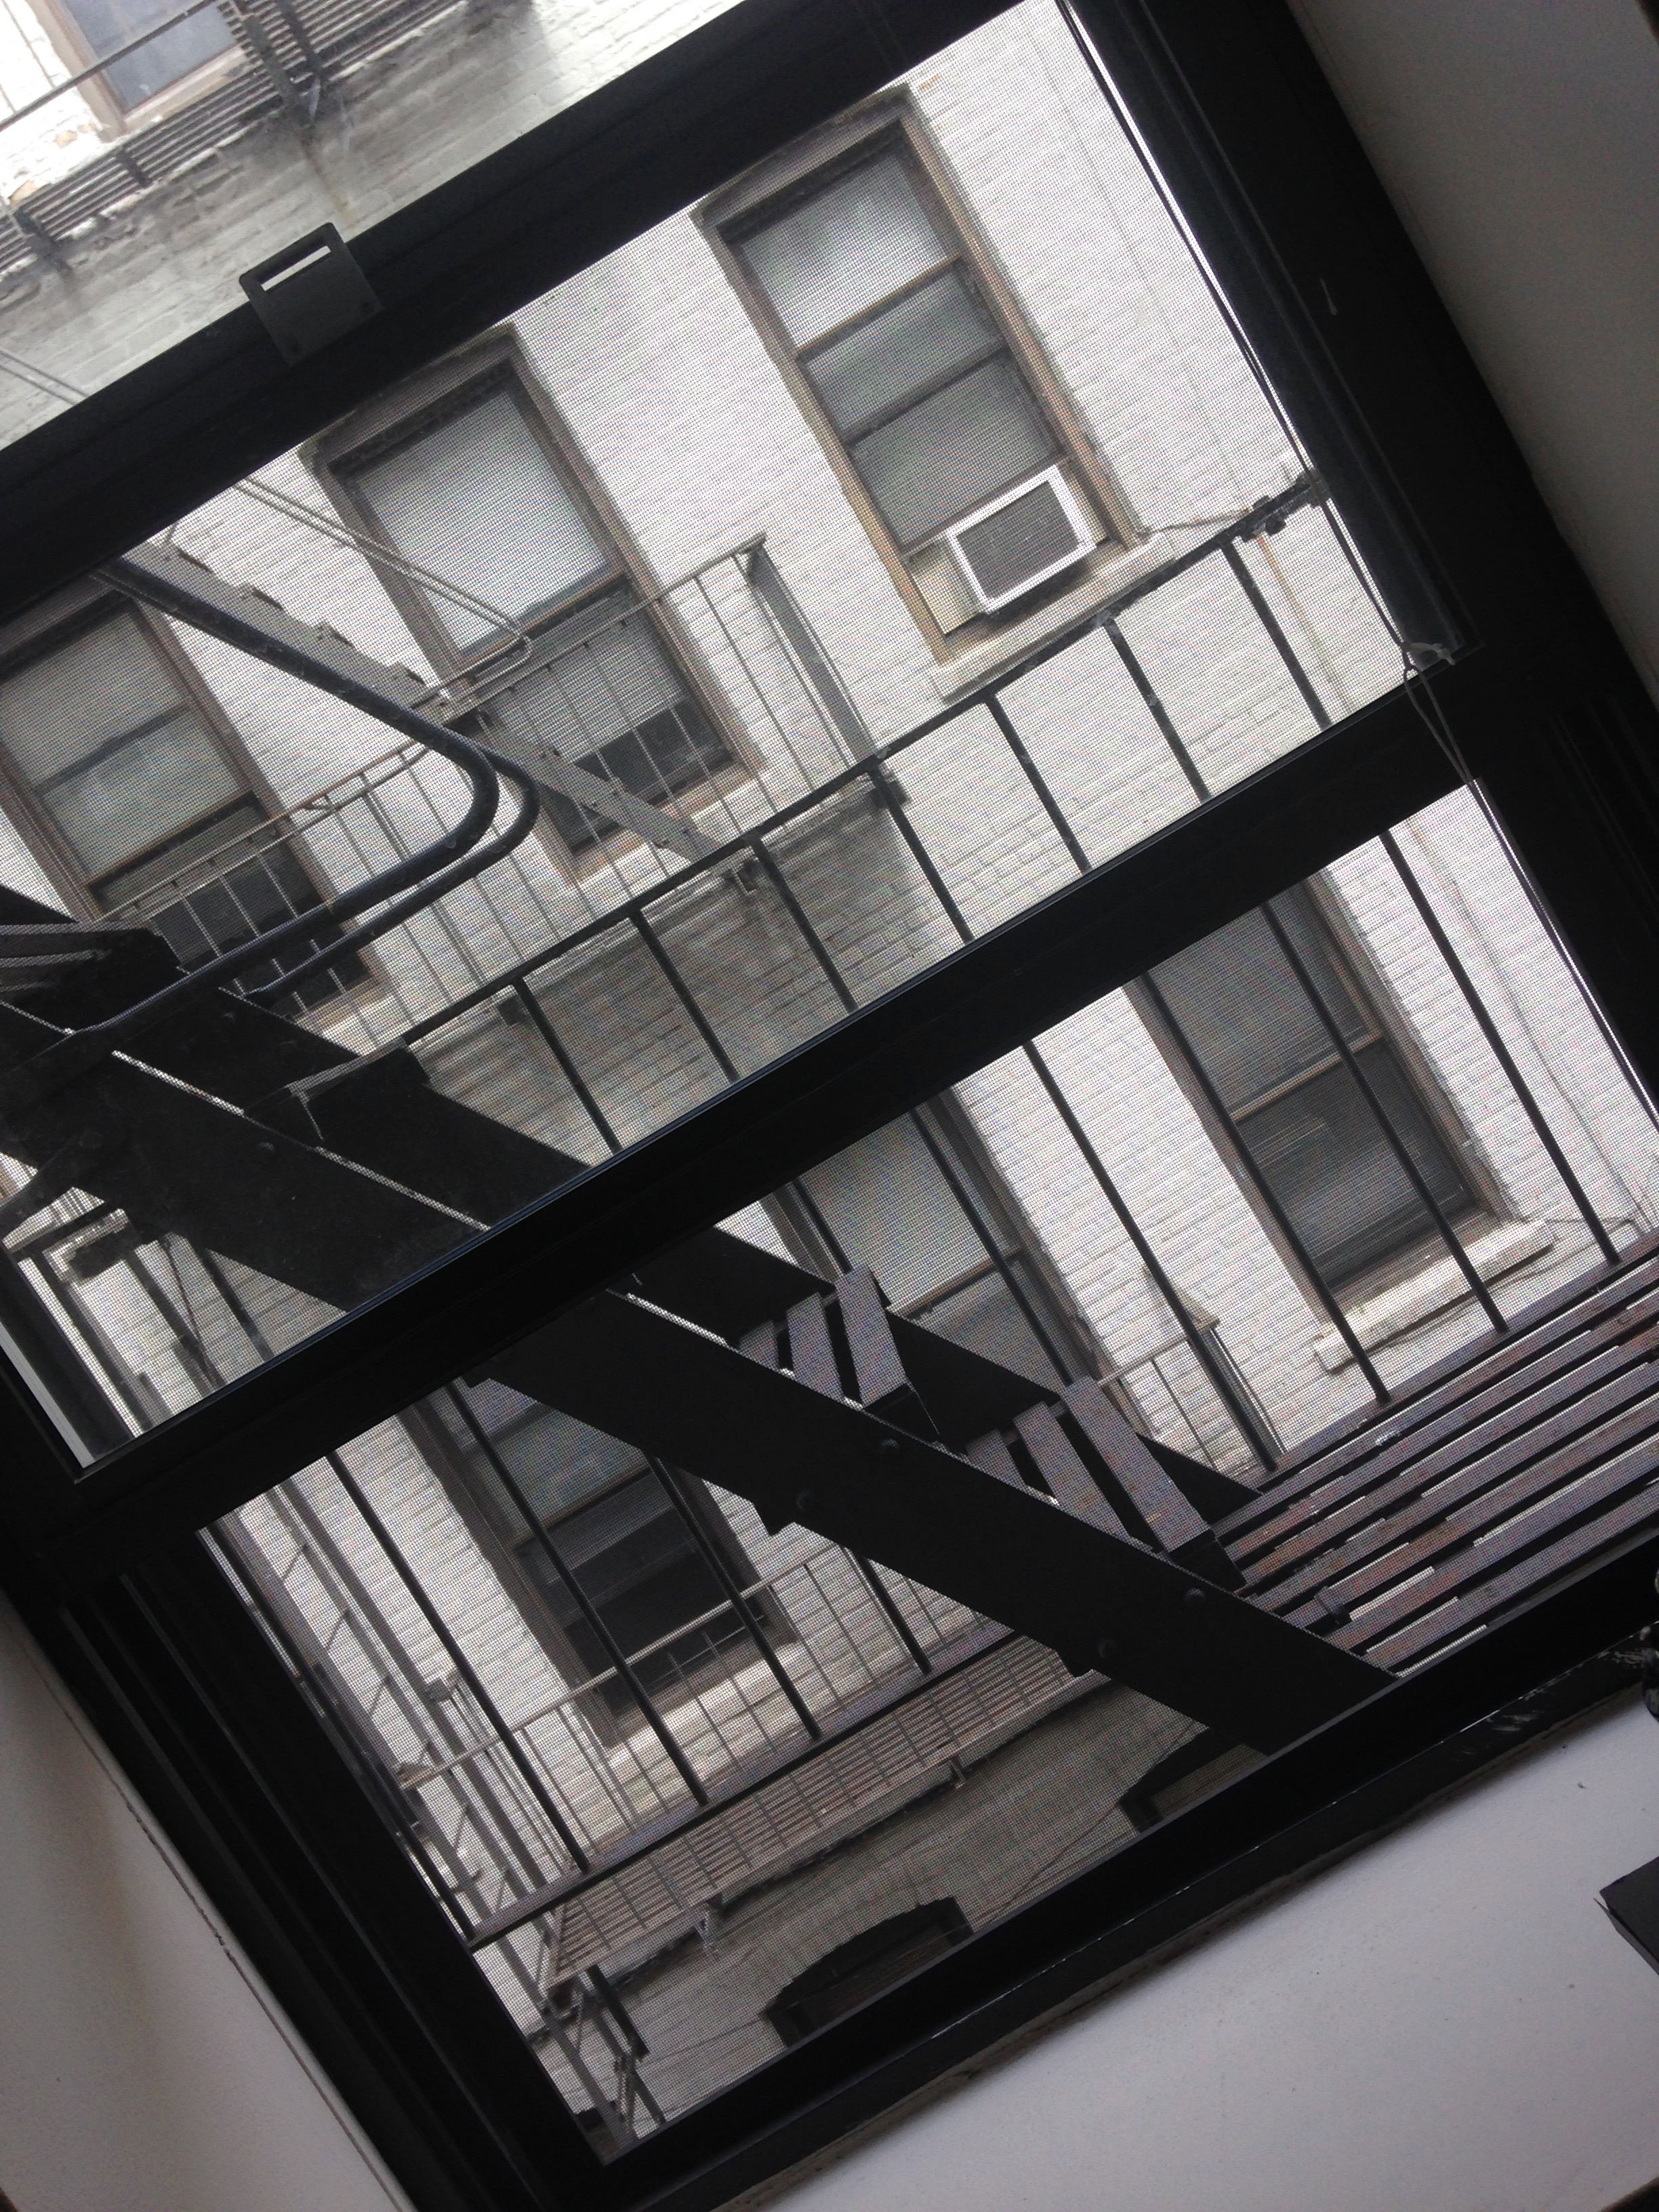 7. Fire escape!